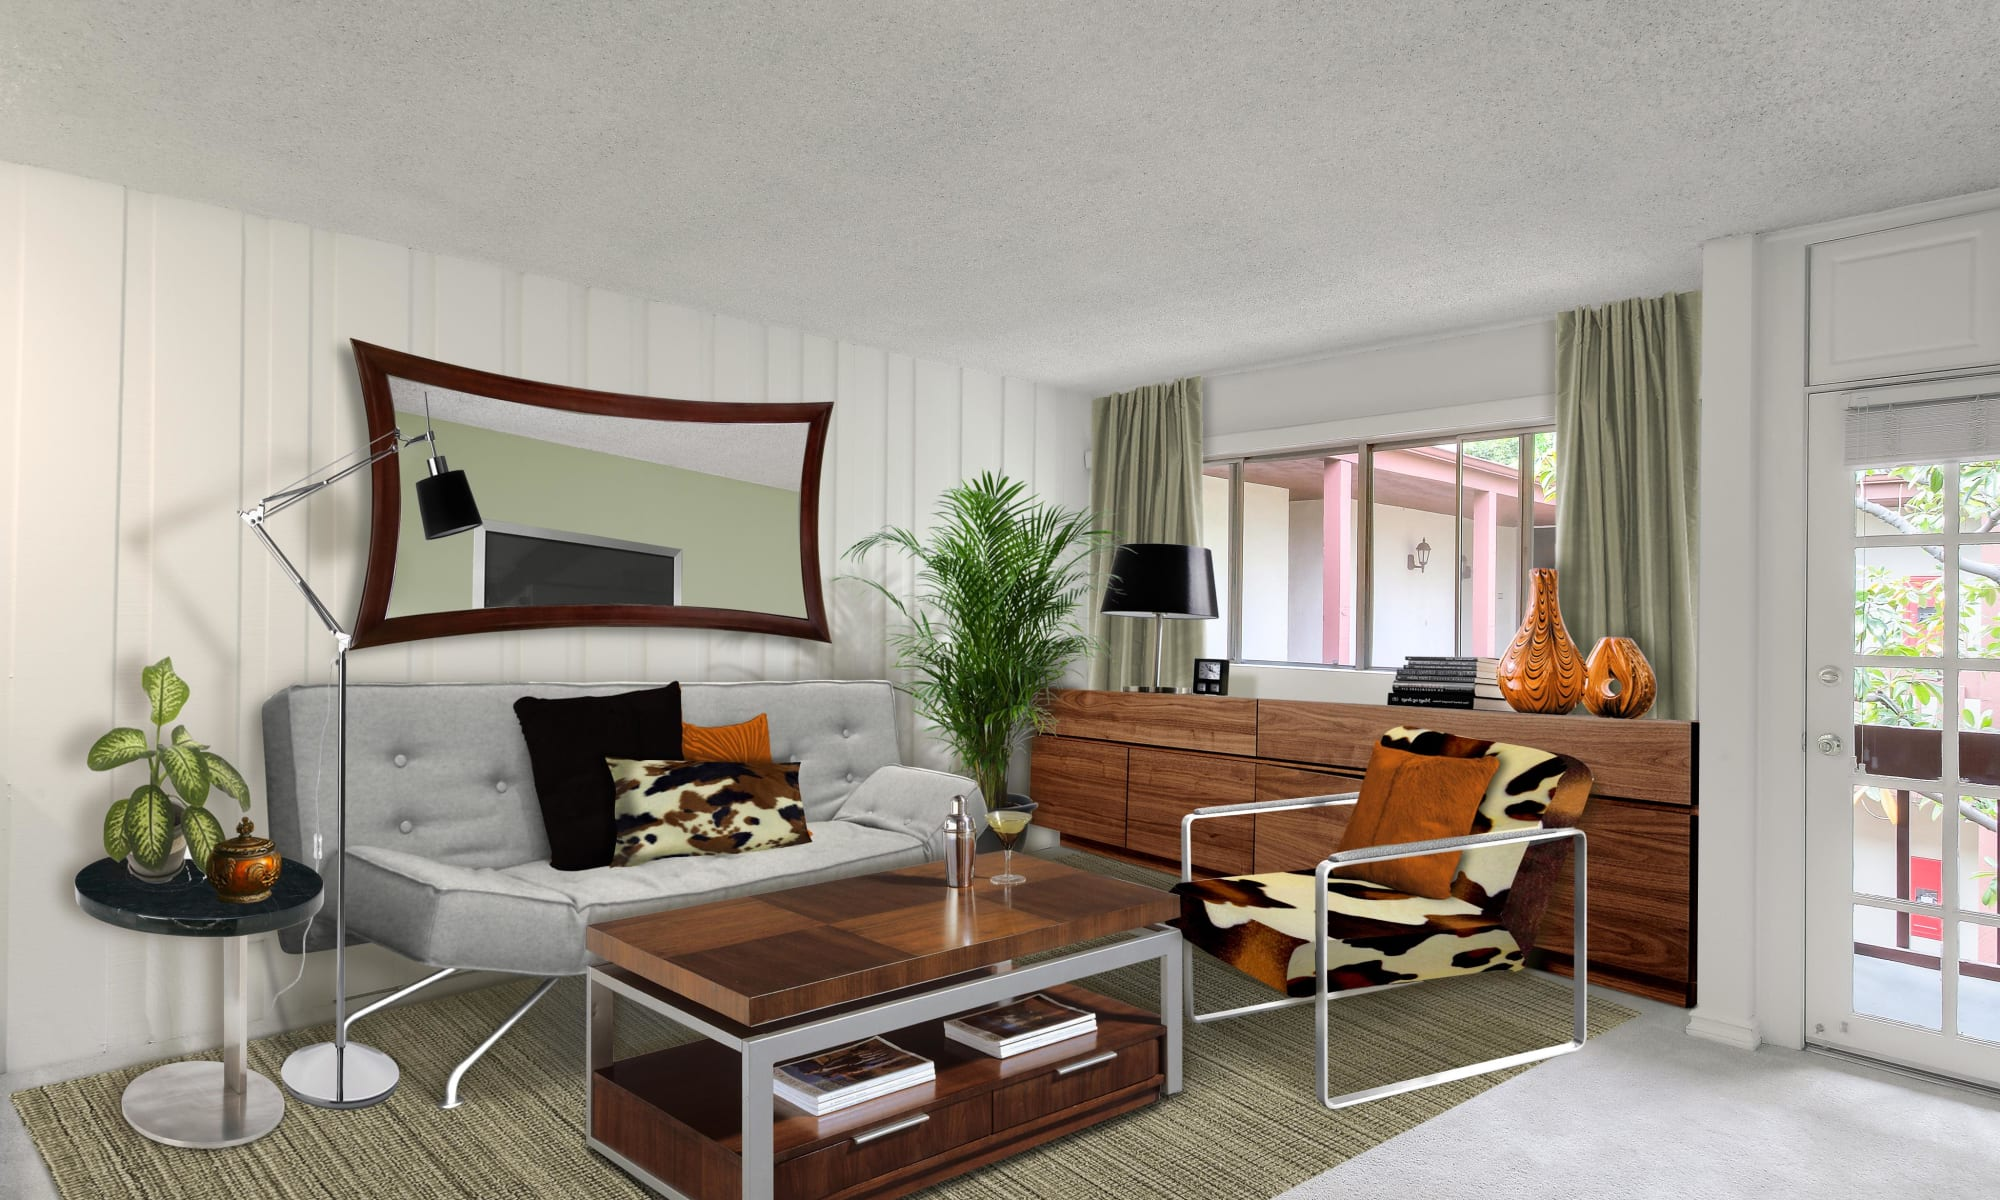 Natural light flooding the well-furnished living area of a model home at Rancho Los Feliz in Los Angeles, California